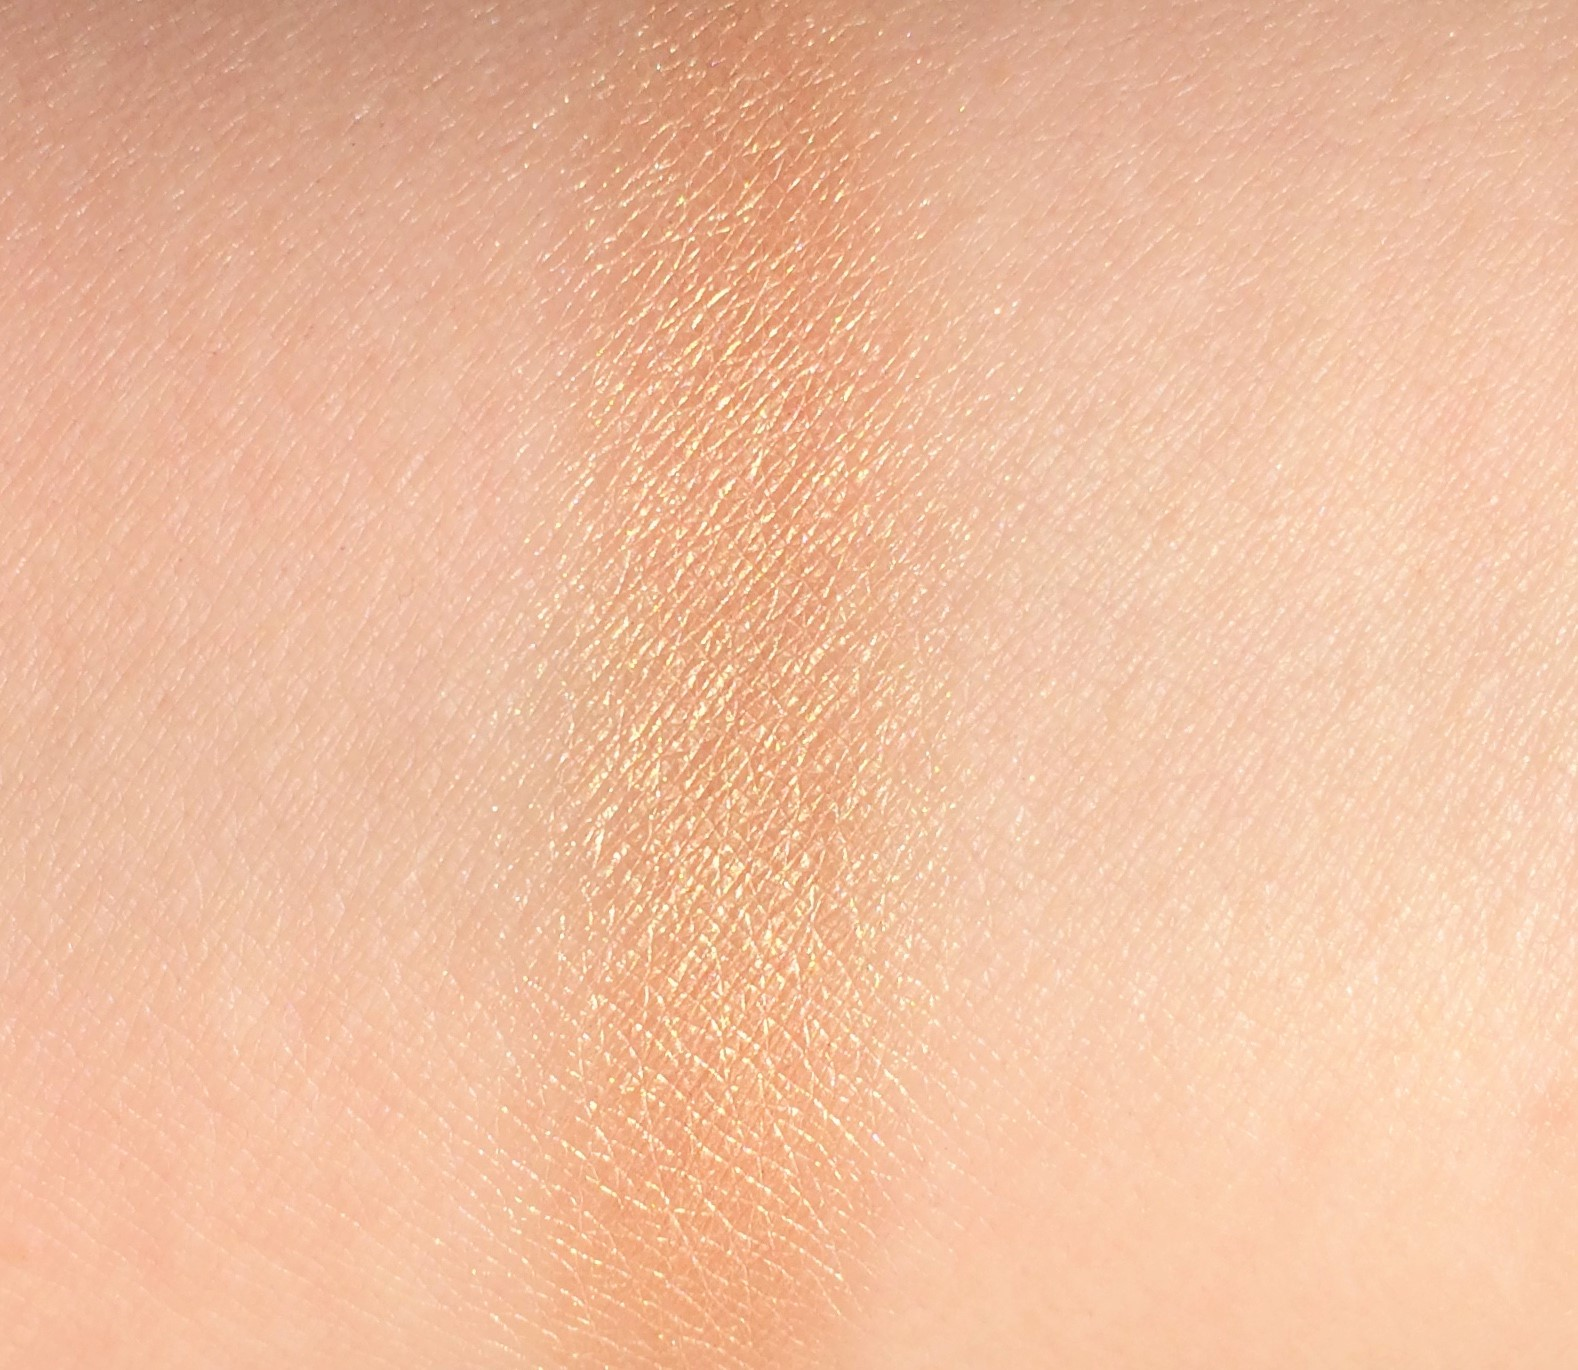 Recensione Maybelline Molten Gold Master Chrome Highlighter metallizzato (6)